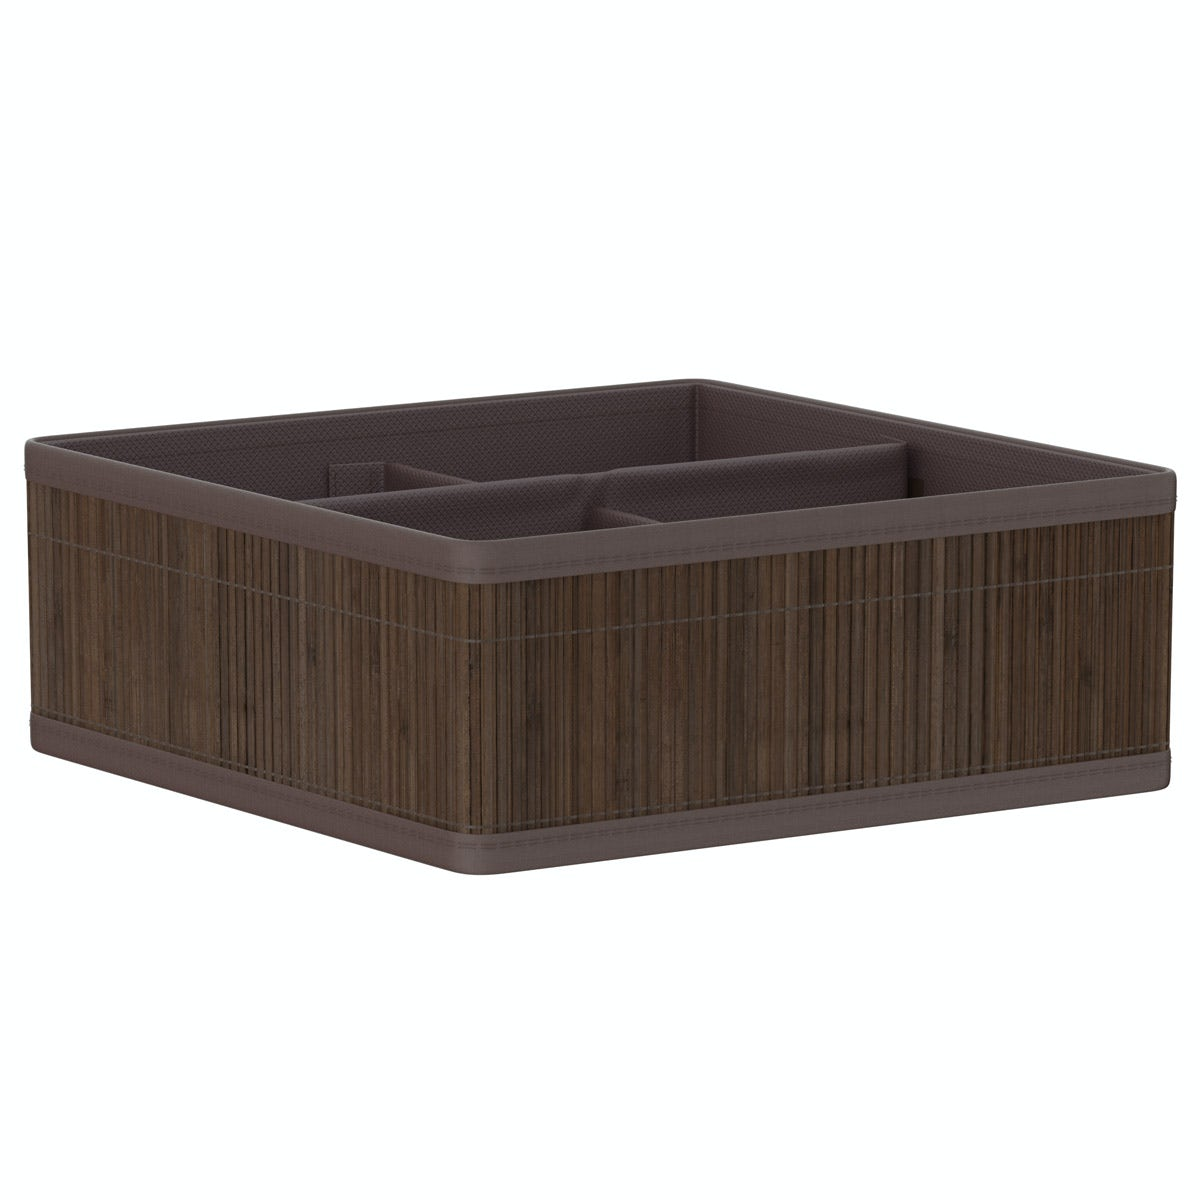 Orchard Natural bamboo 4 section dark brown storage basket